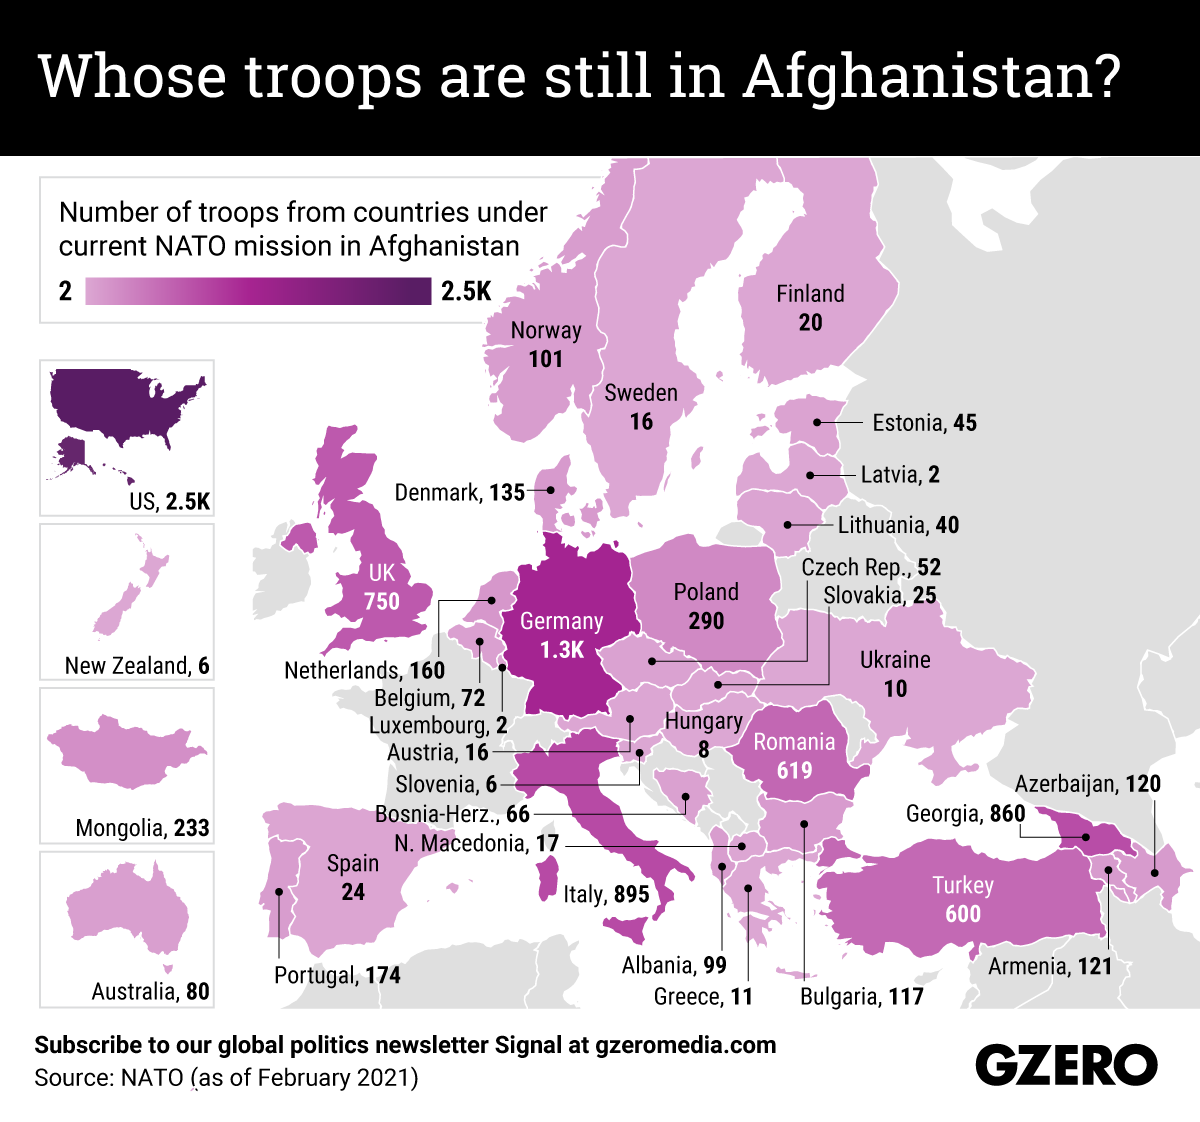 The Graphic Truth: Whose troops are still in Afghanistan?